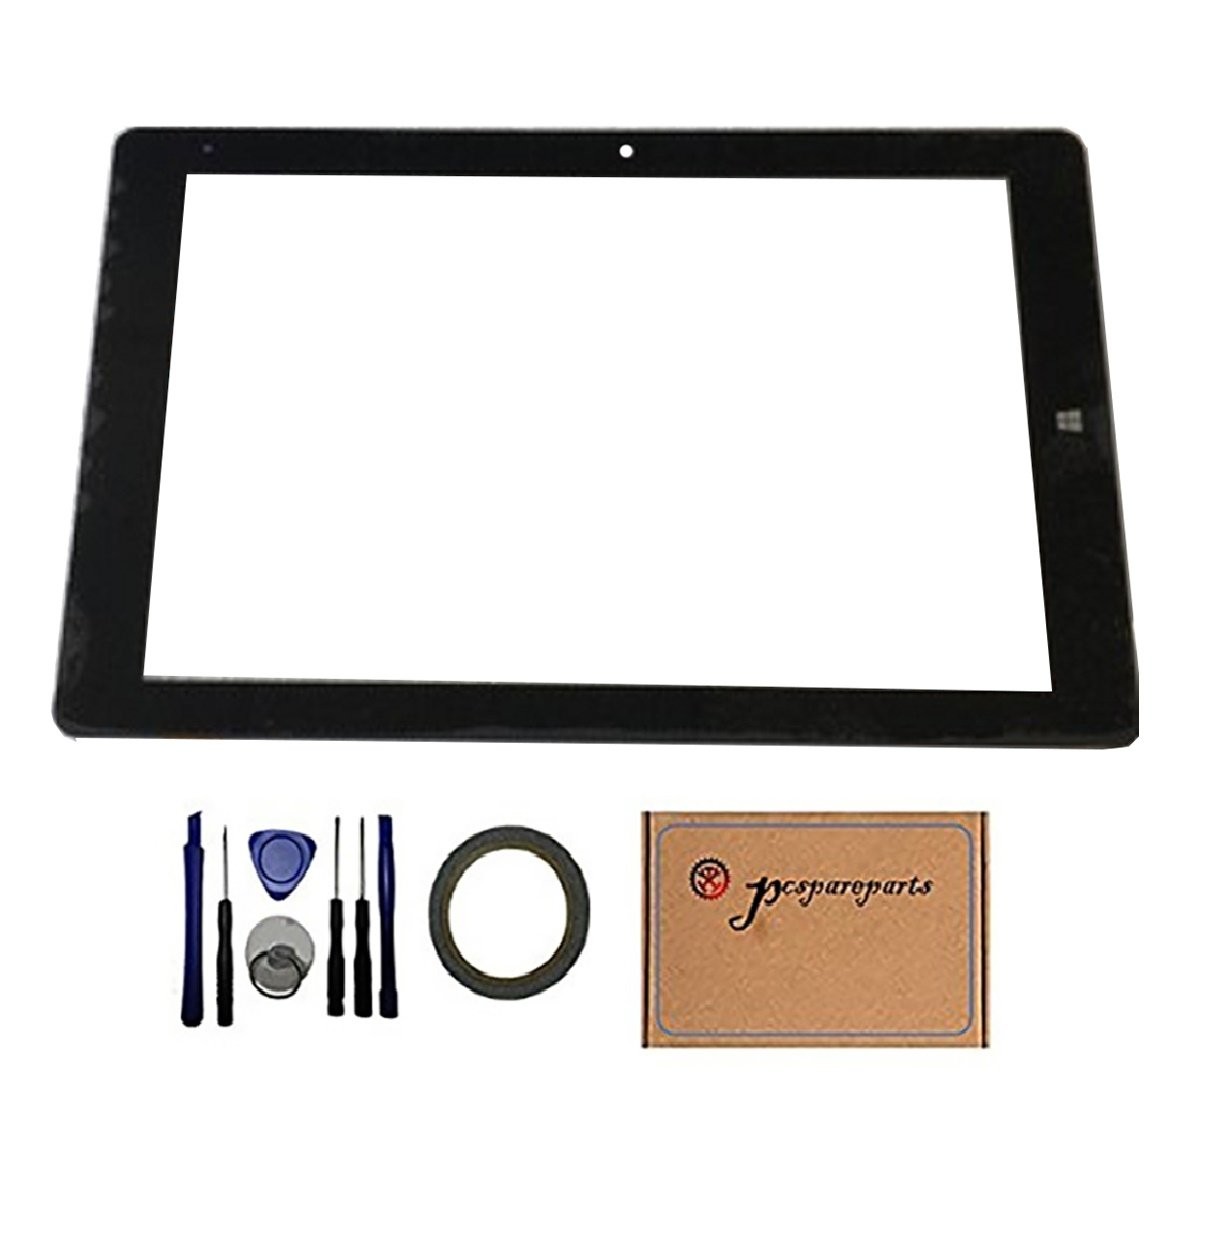 Pcspareparts New Replacment Digitizer Touch Screen Glass Panel for CHUWI Hi10 Pro CW1529 Tablet PC